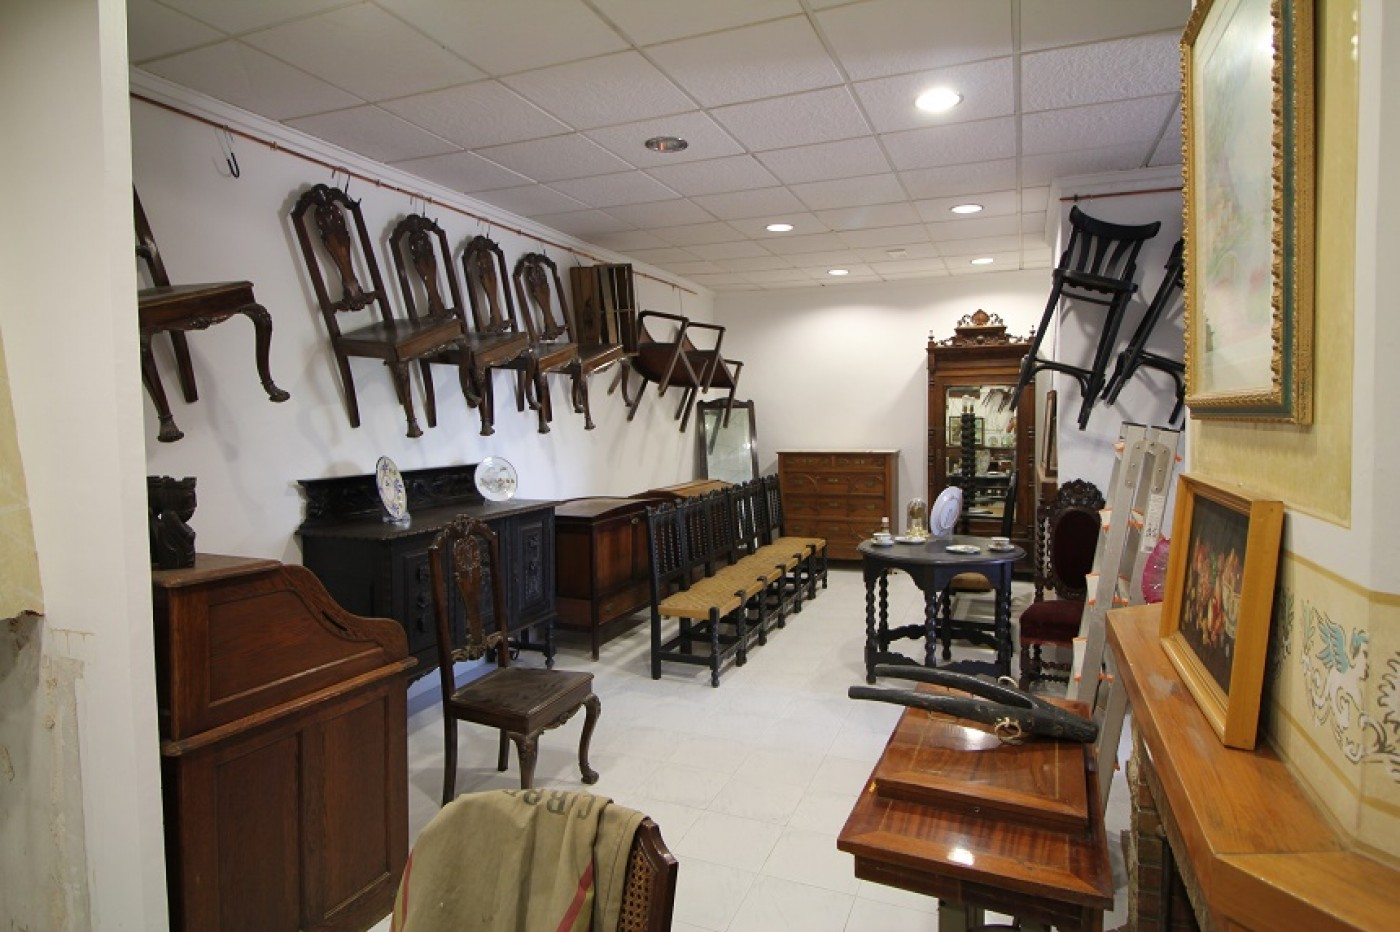 London Antiques showroom, fairs and auctions in Orihuela